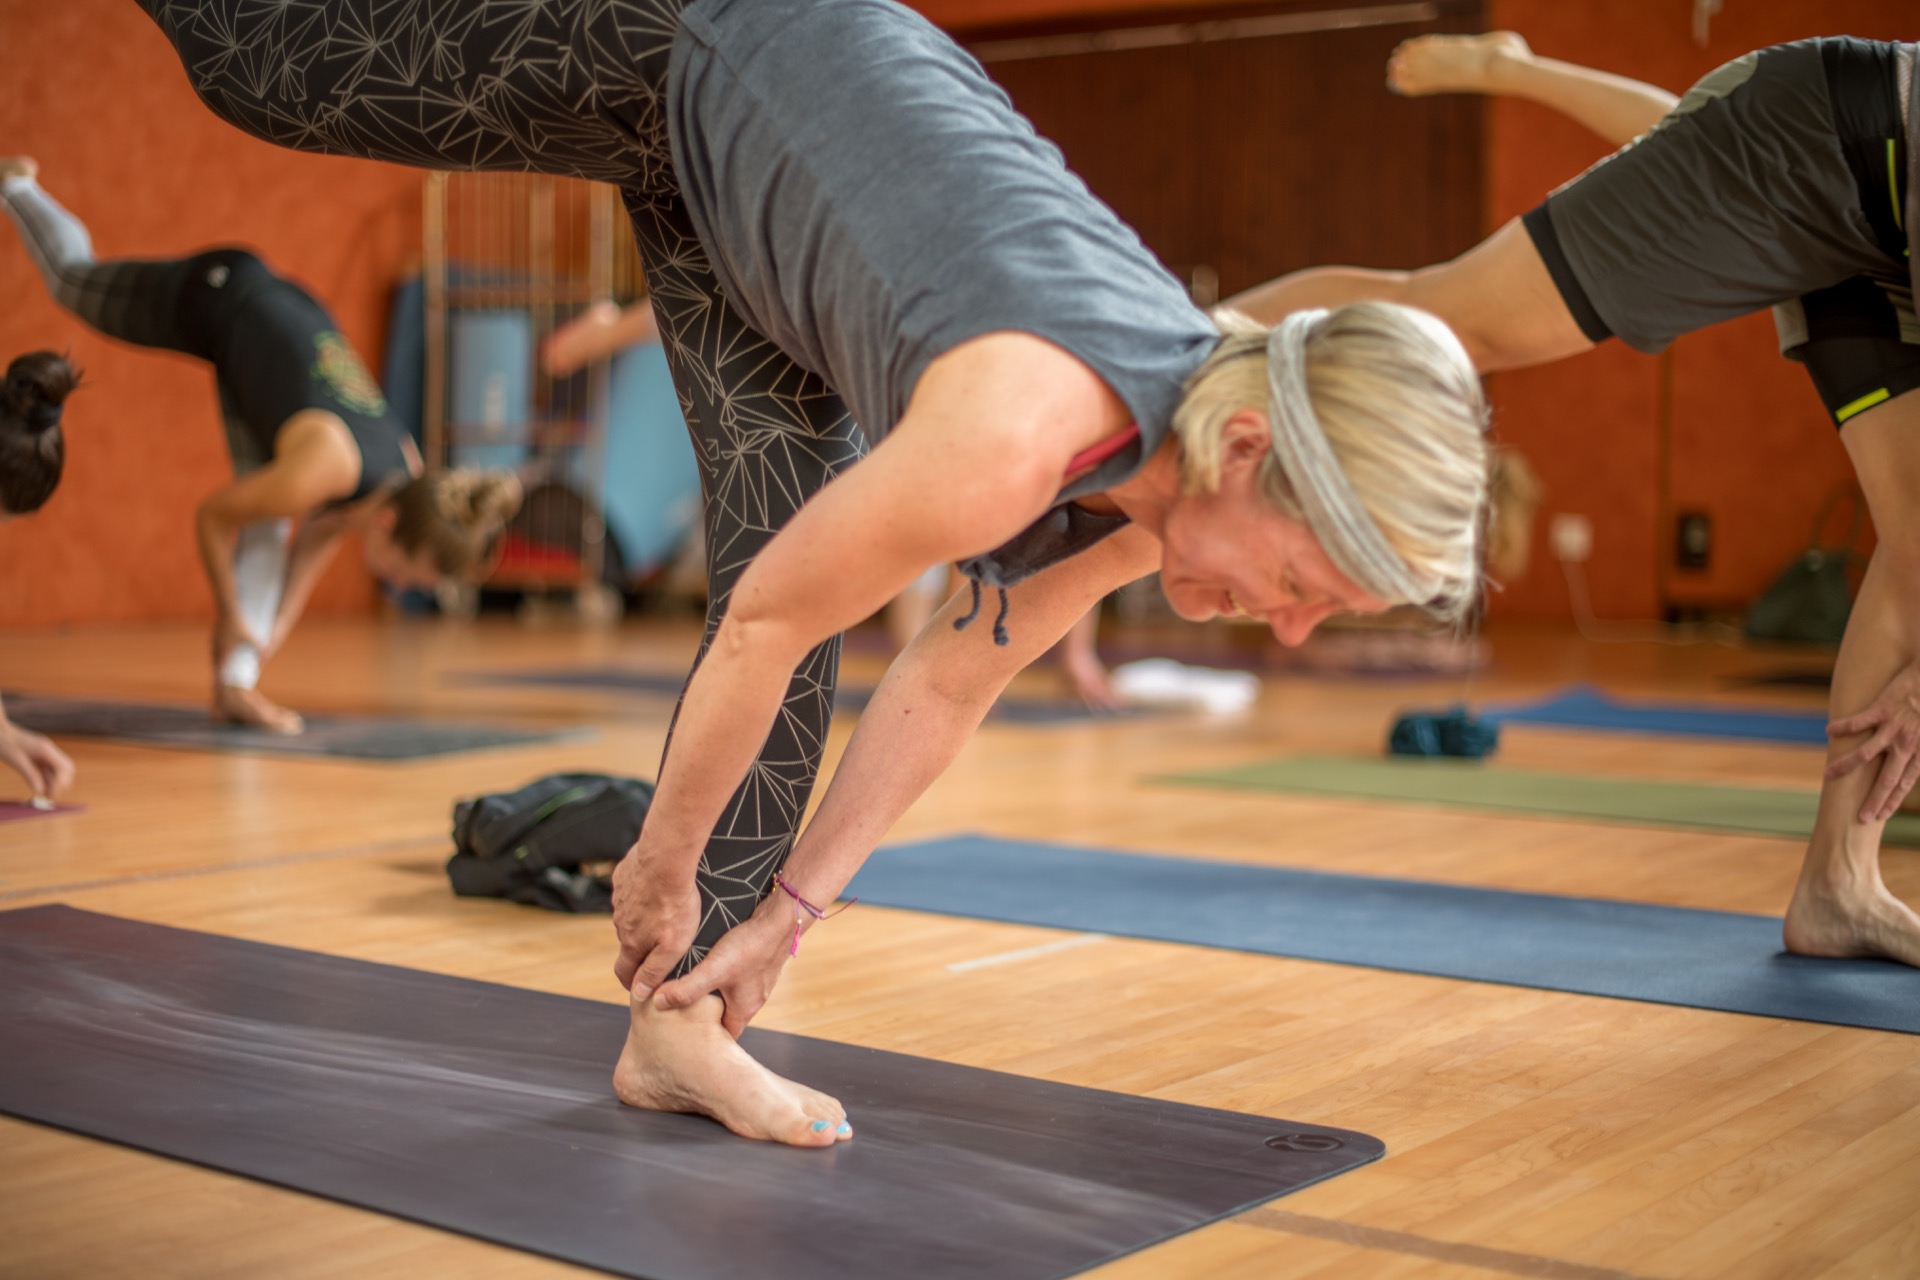 Hie-Kim-Friends-2019-Yoga-Retreat-Alina-Matis-Photography-182 - Hie Kim Yoga - Yoga Retreat - Yoga Workshops und Reisen